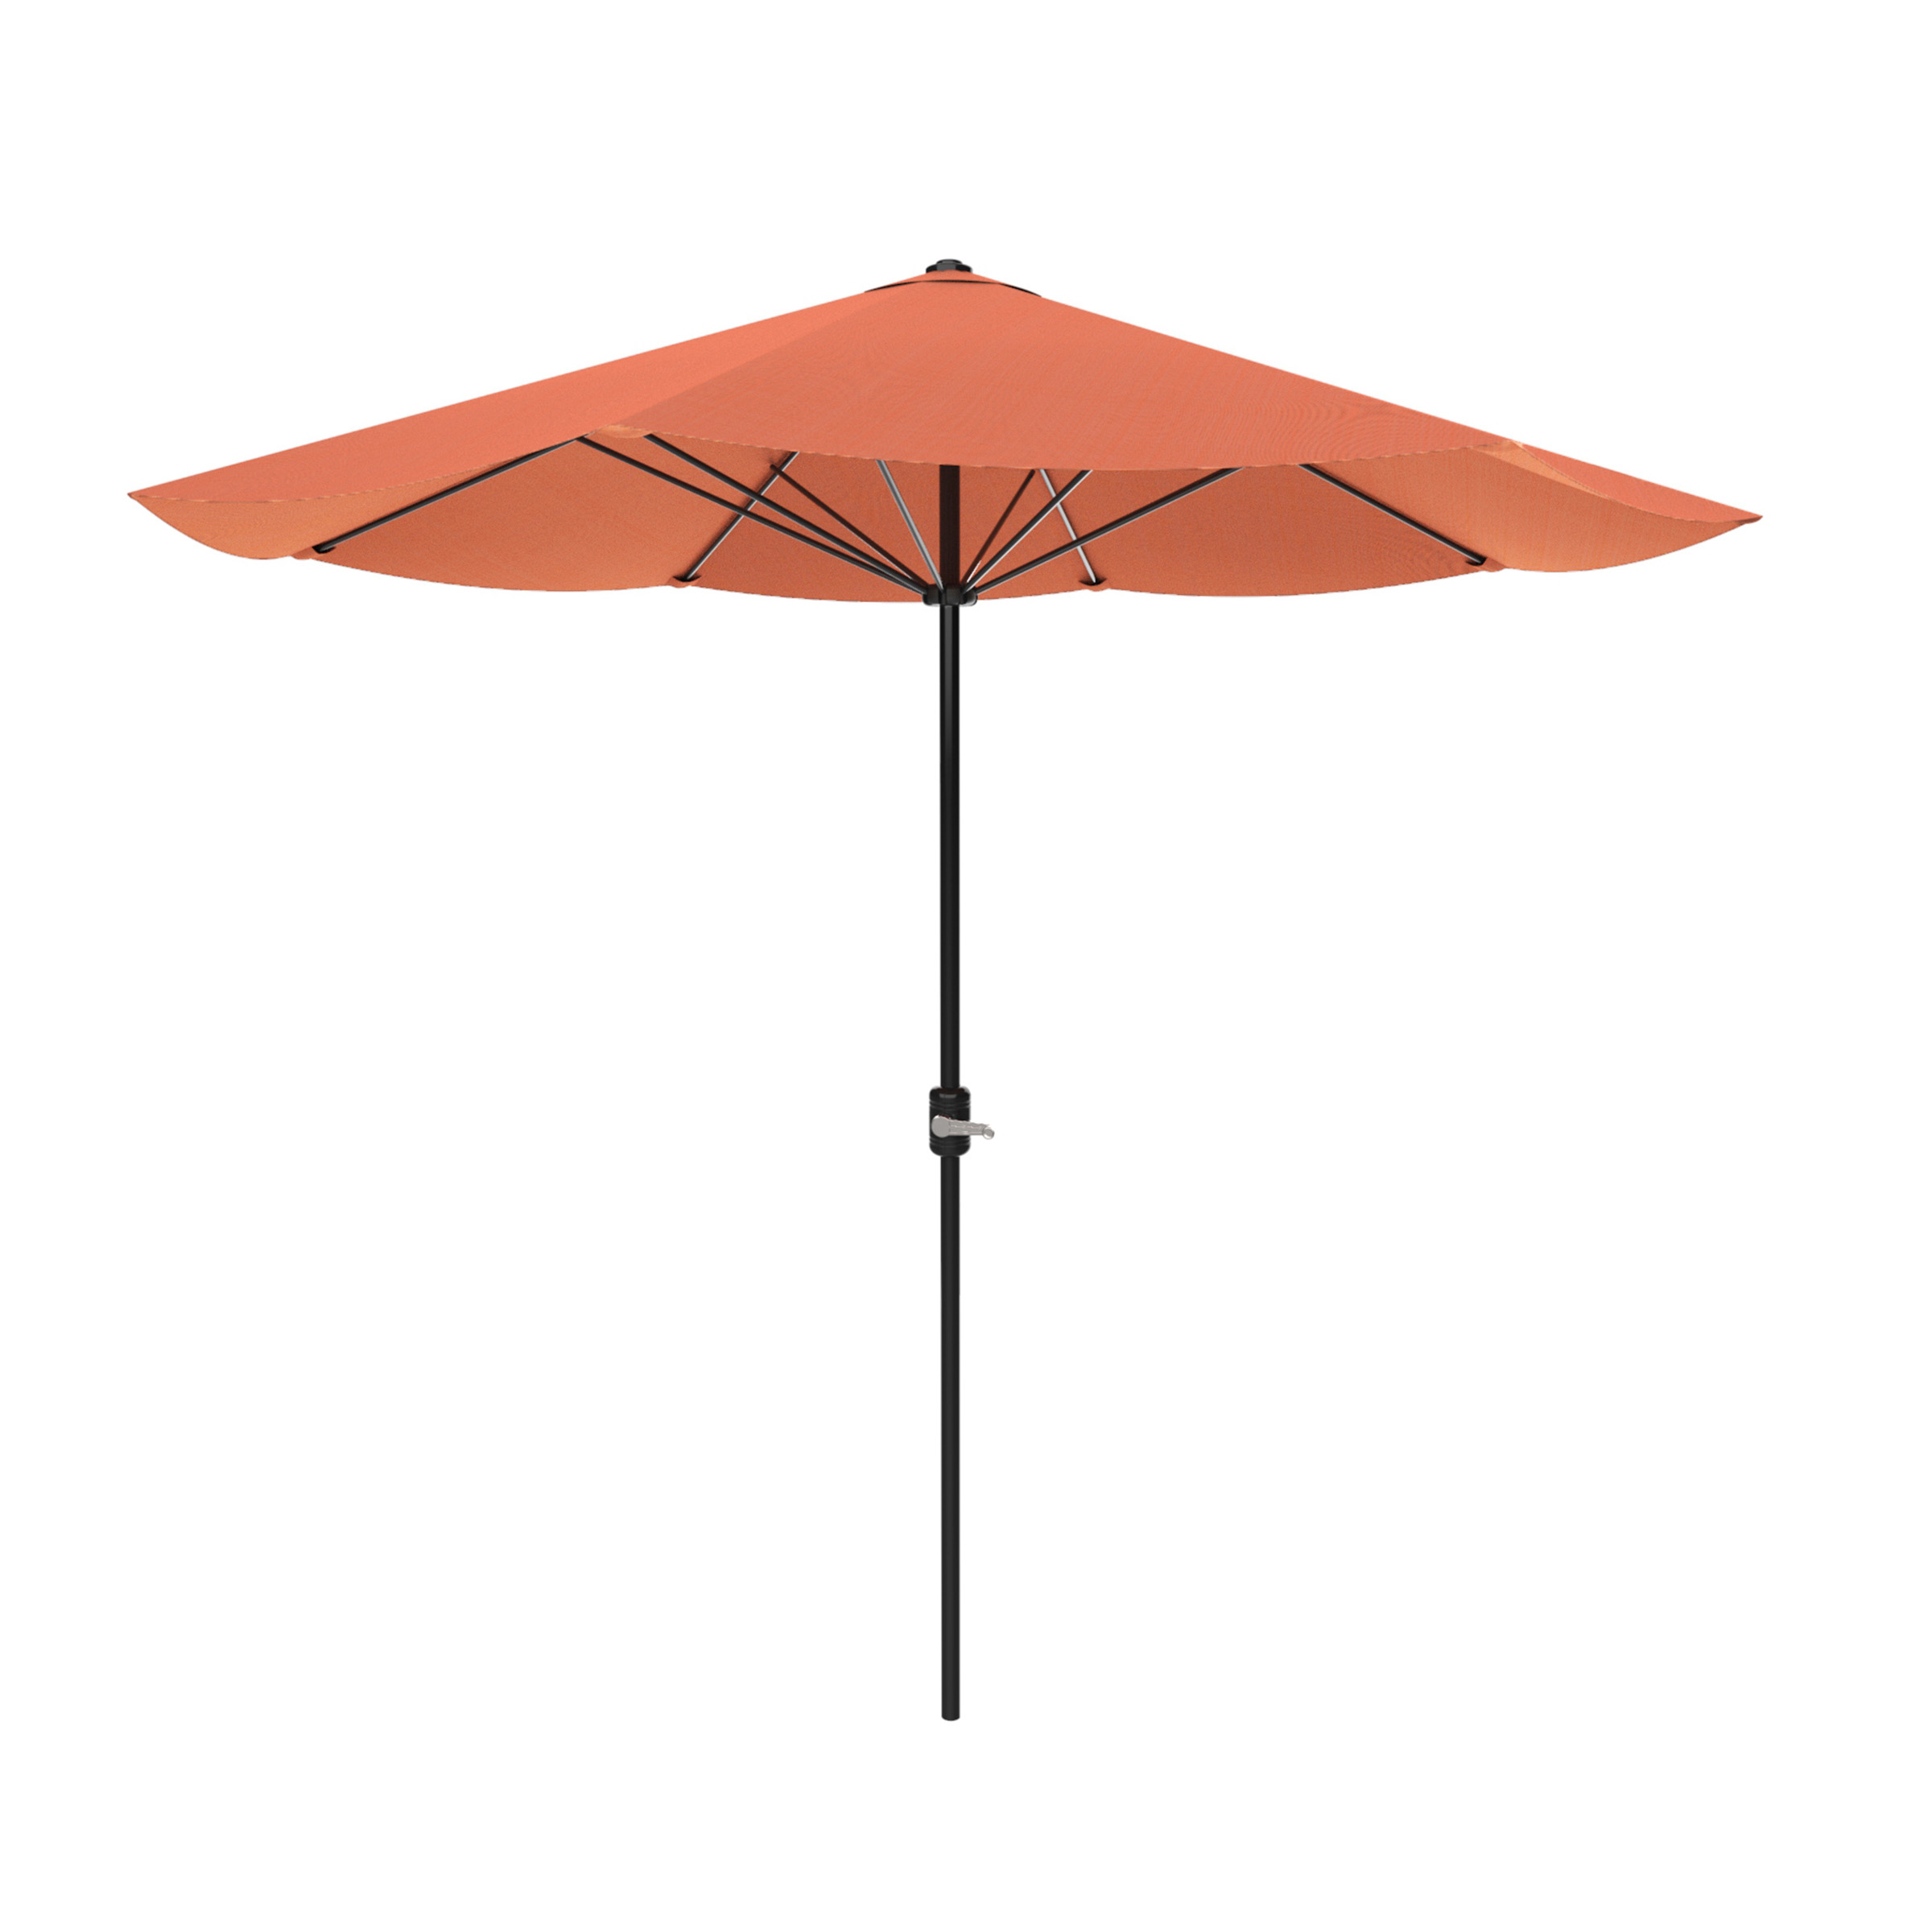 Patio Umbrella, Outdoor Shade with Easy Crank- Table Umbrella for Deck, Balcony, Porch,... by Trademark Global LLC